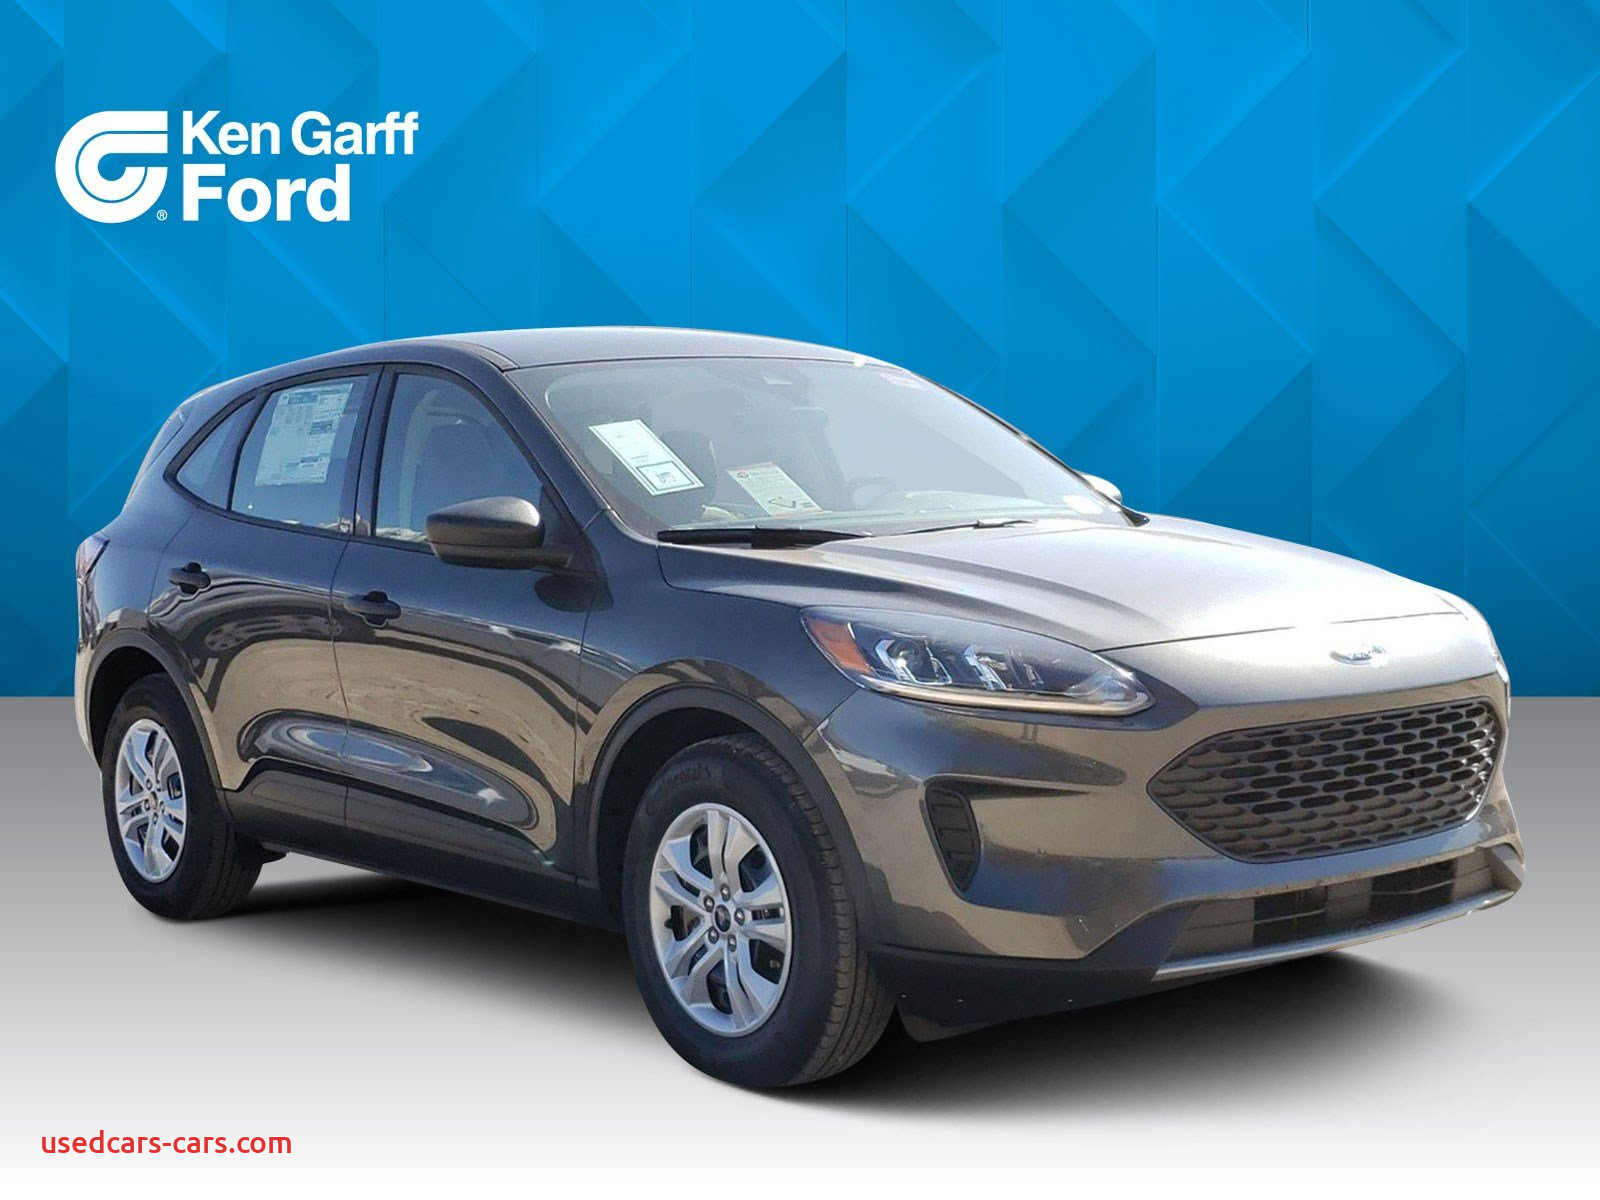 Engines for 2020 ford Escape Awesome New 2020 ford Escape S Fwd Sport Utility